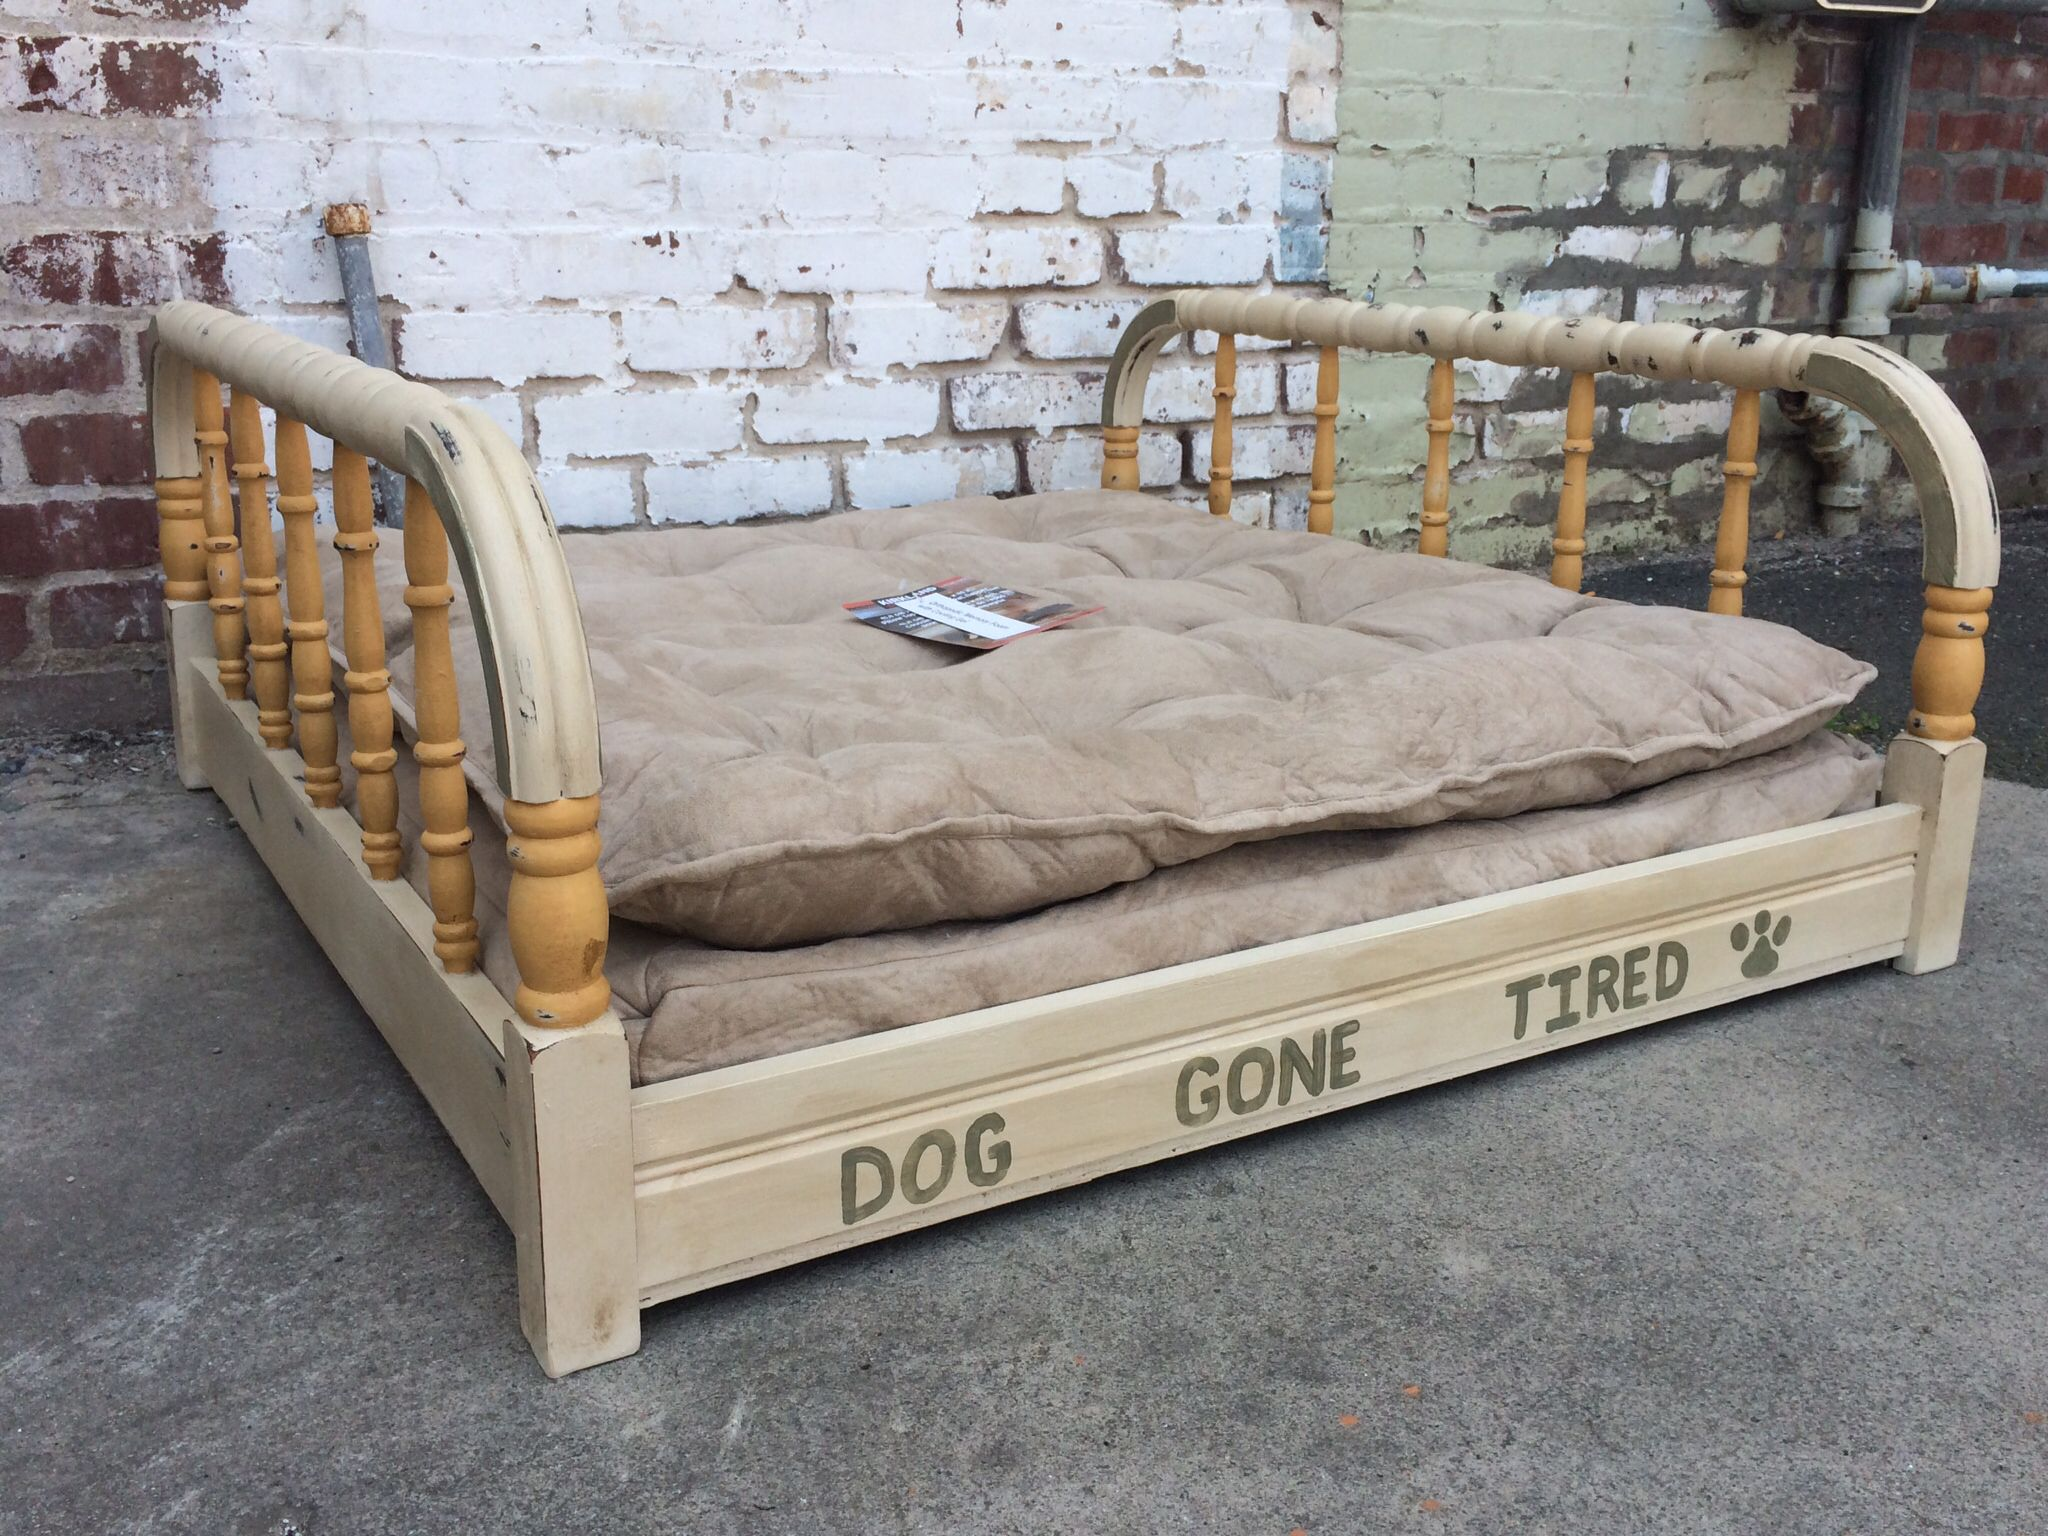 Dewaynes newest project a dog bed made from an old bed frame chalk paint arles old ochre and chateau grey doesnt your dog need a beautiful bed with